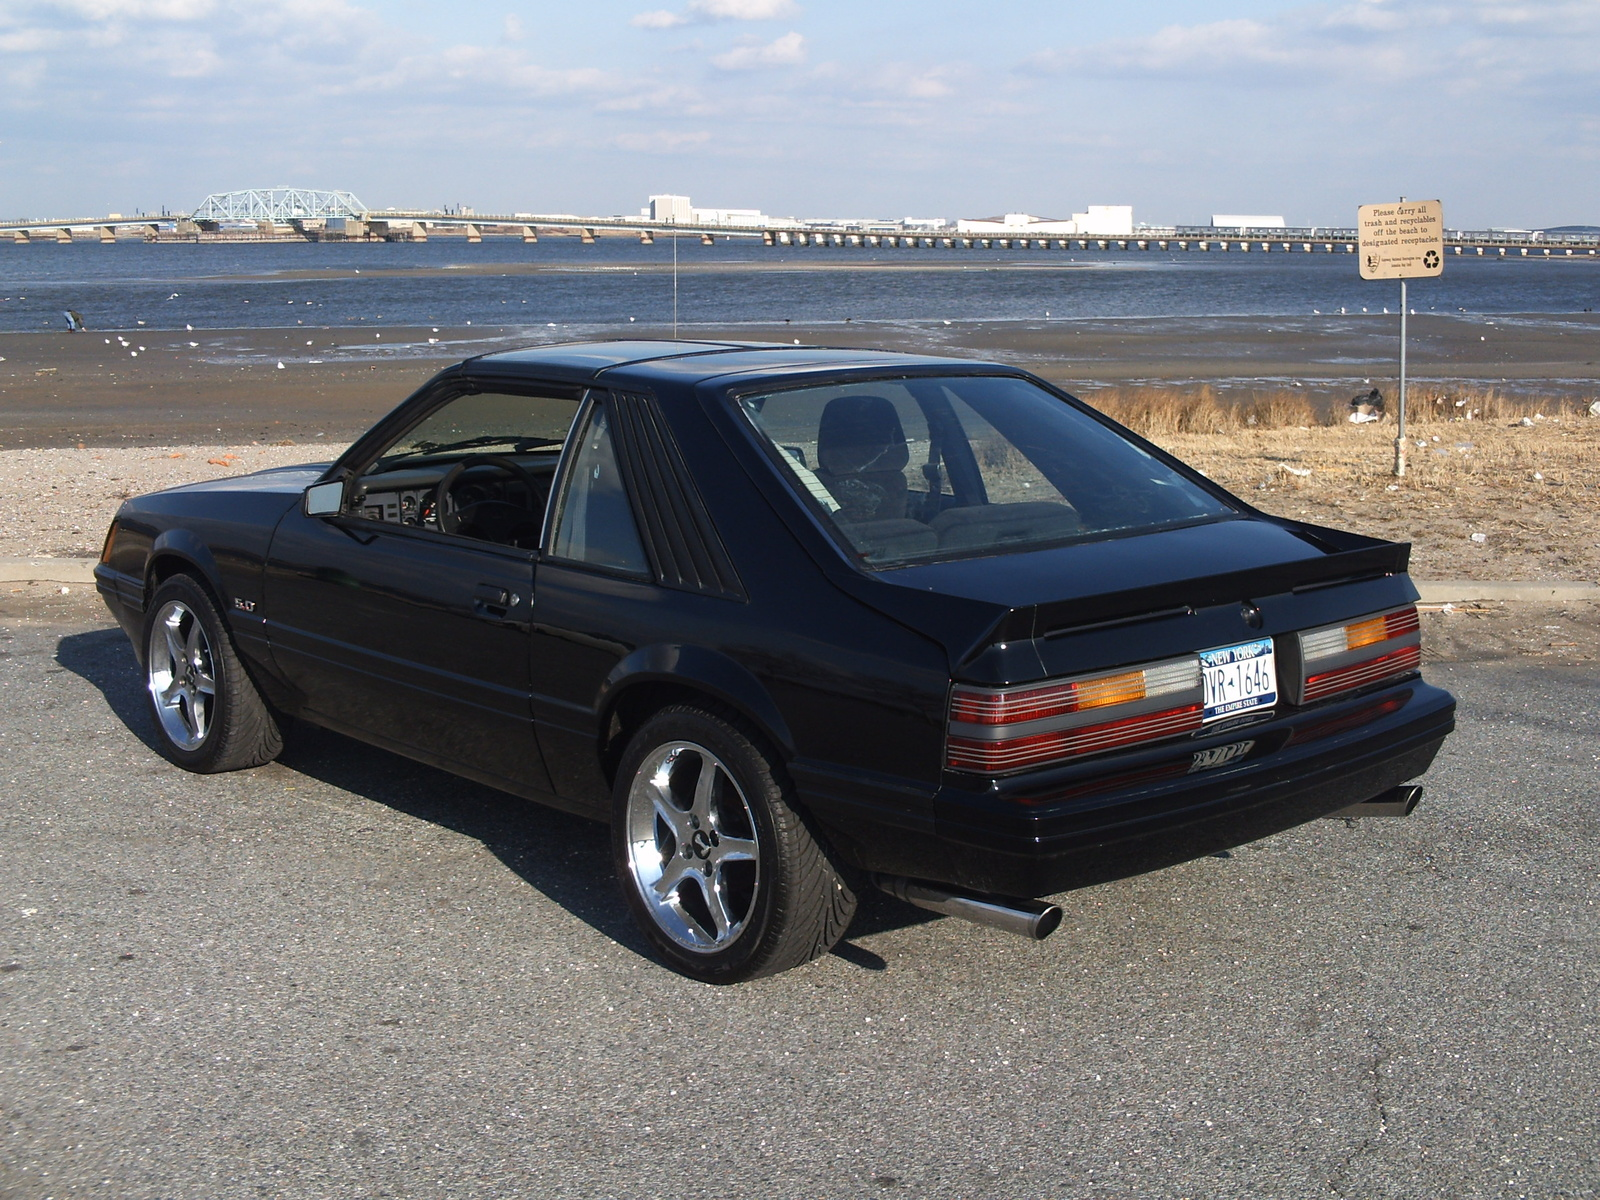 Picture of 1984 ford mustang gt350 exterior - 1984 Ford Mustang Gt350 Image